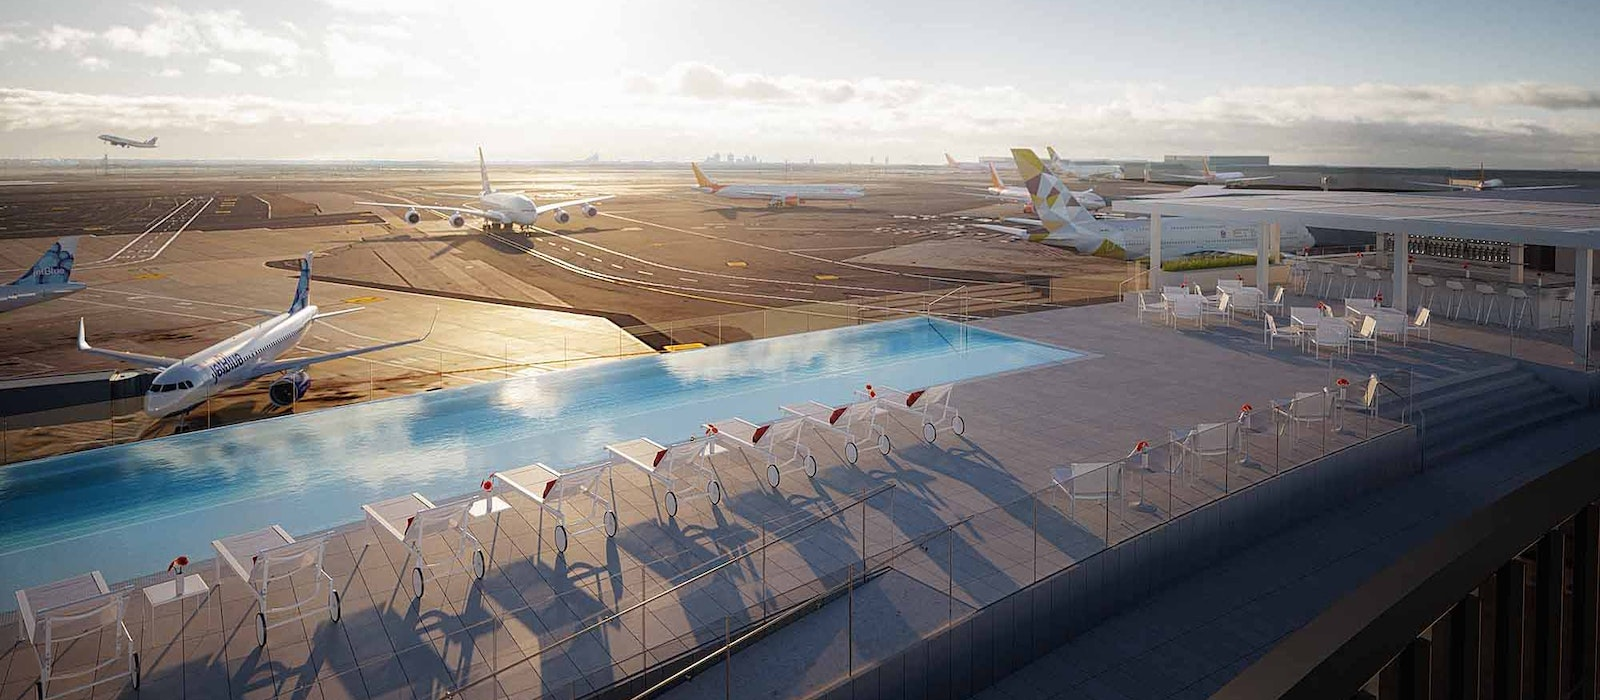 The pool has views of JFK'sRunway 4 Left/22 Right (for all the plane-spotters out there).